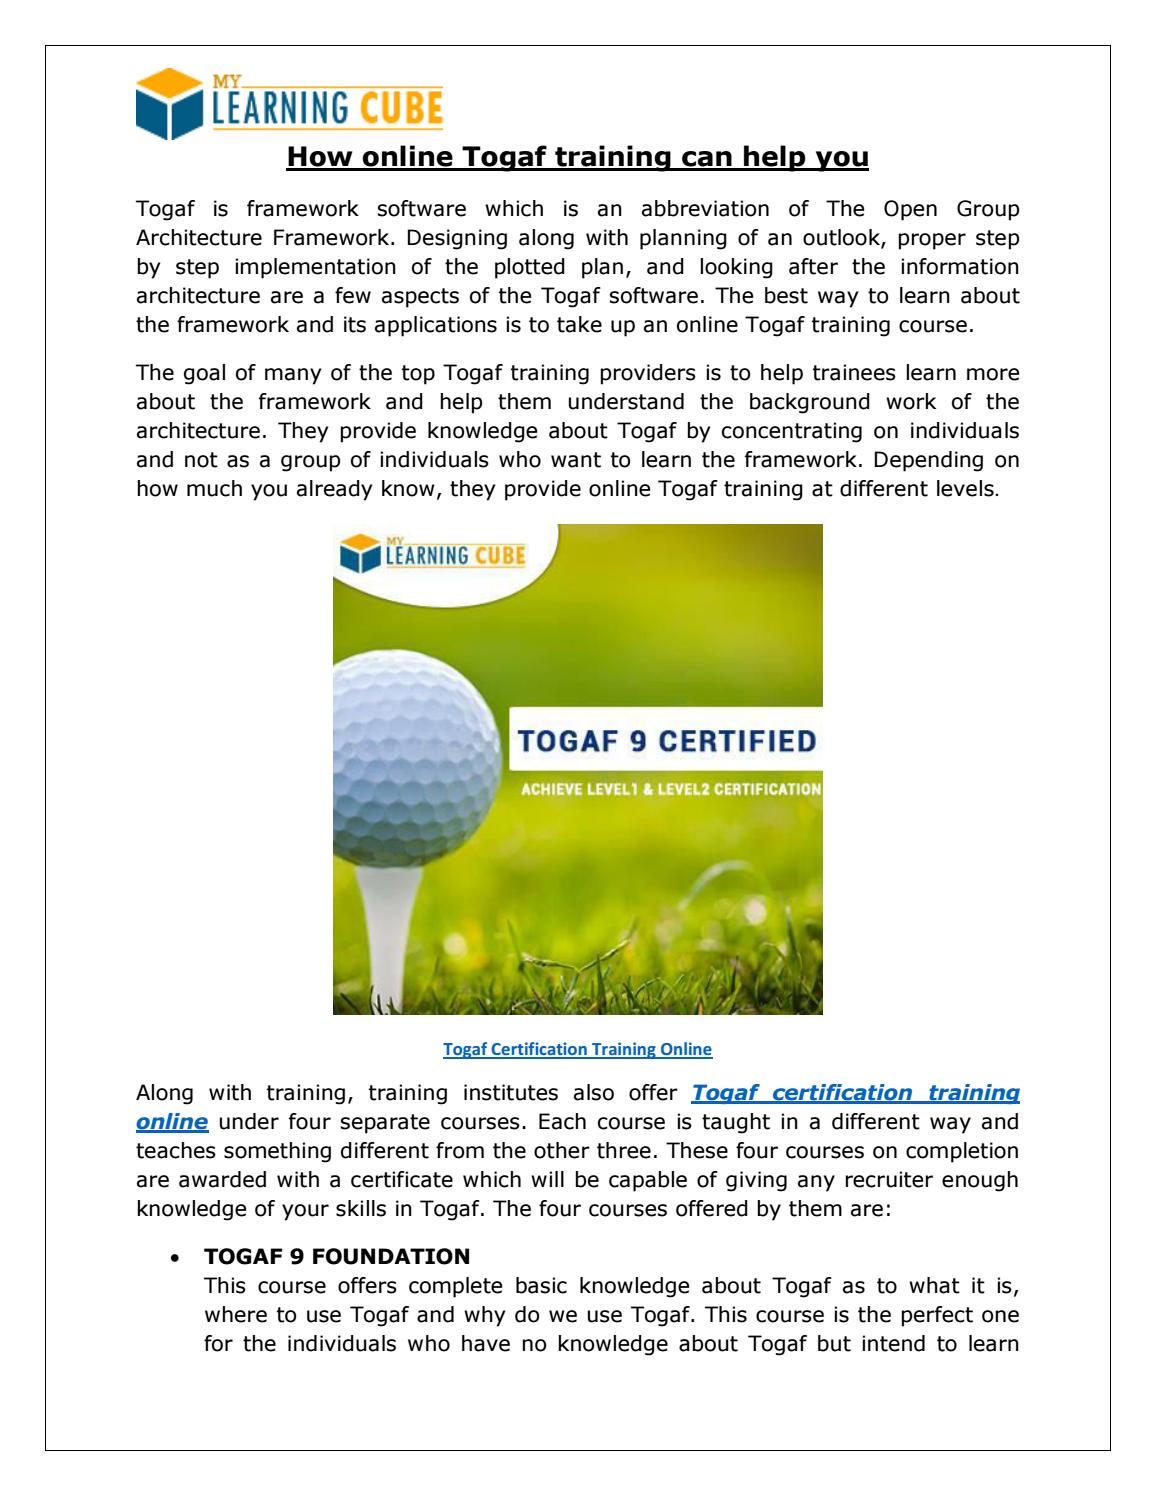 Togaf Certification Online Via Mylearningcube By Mylearningcube Issuu